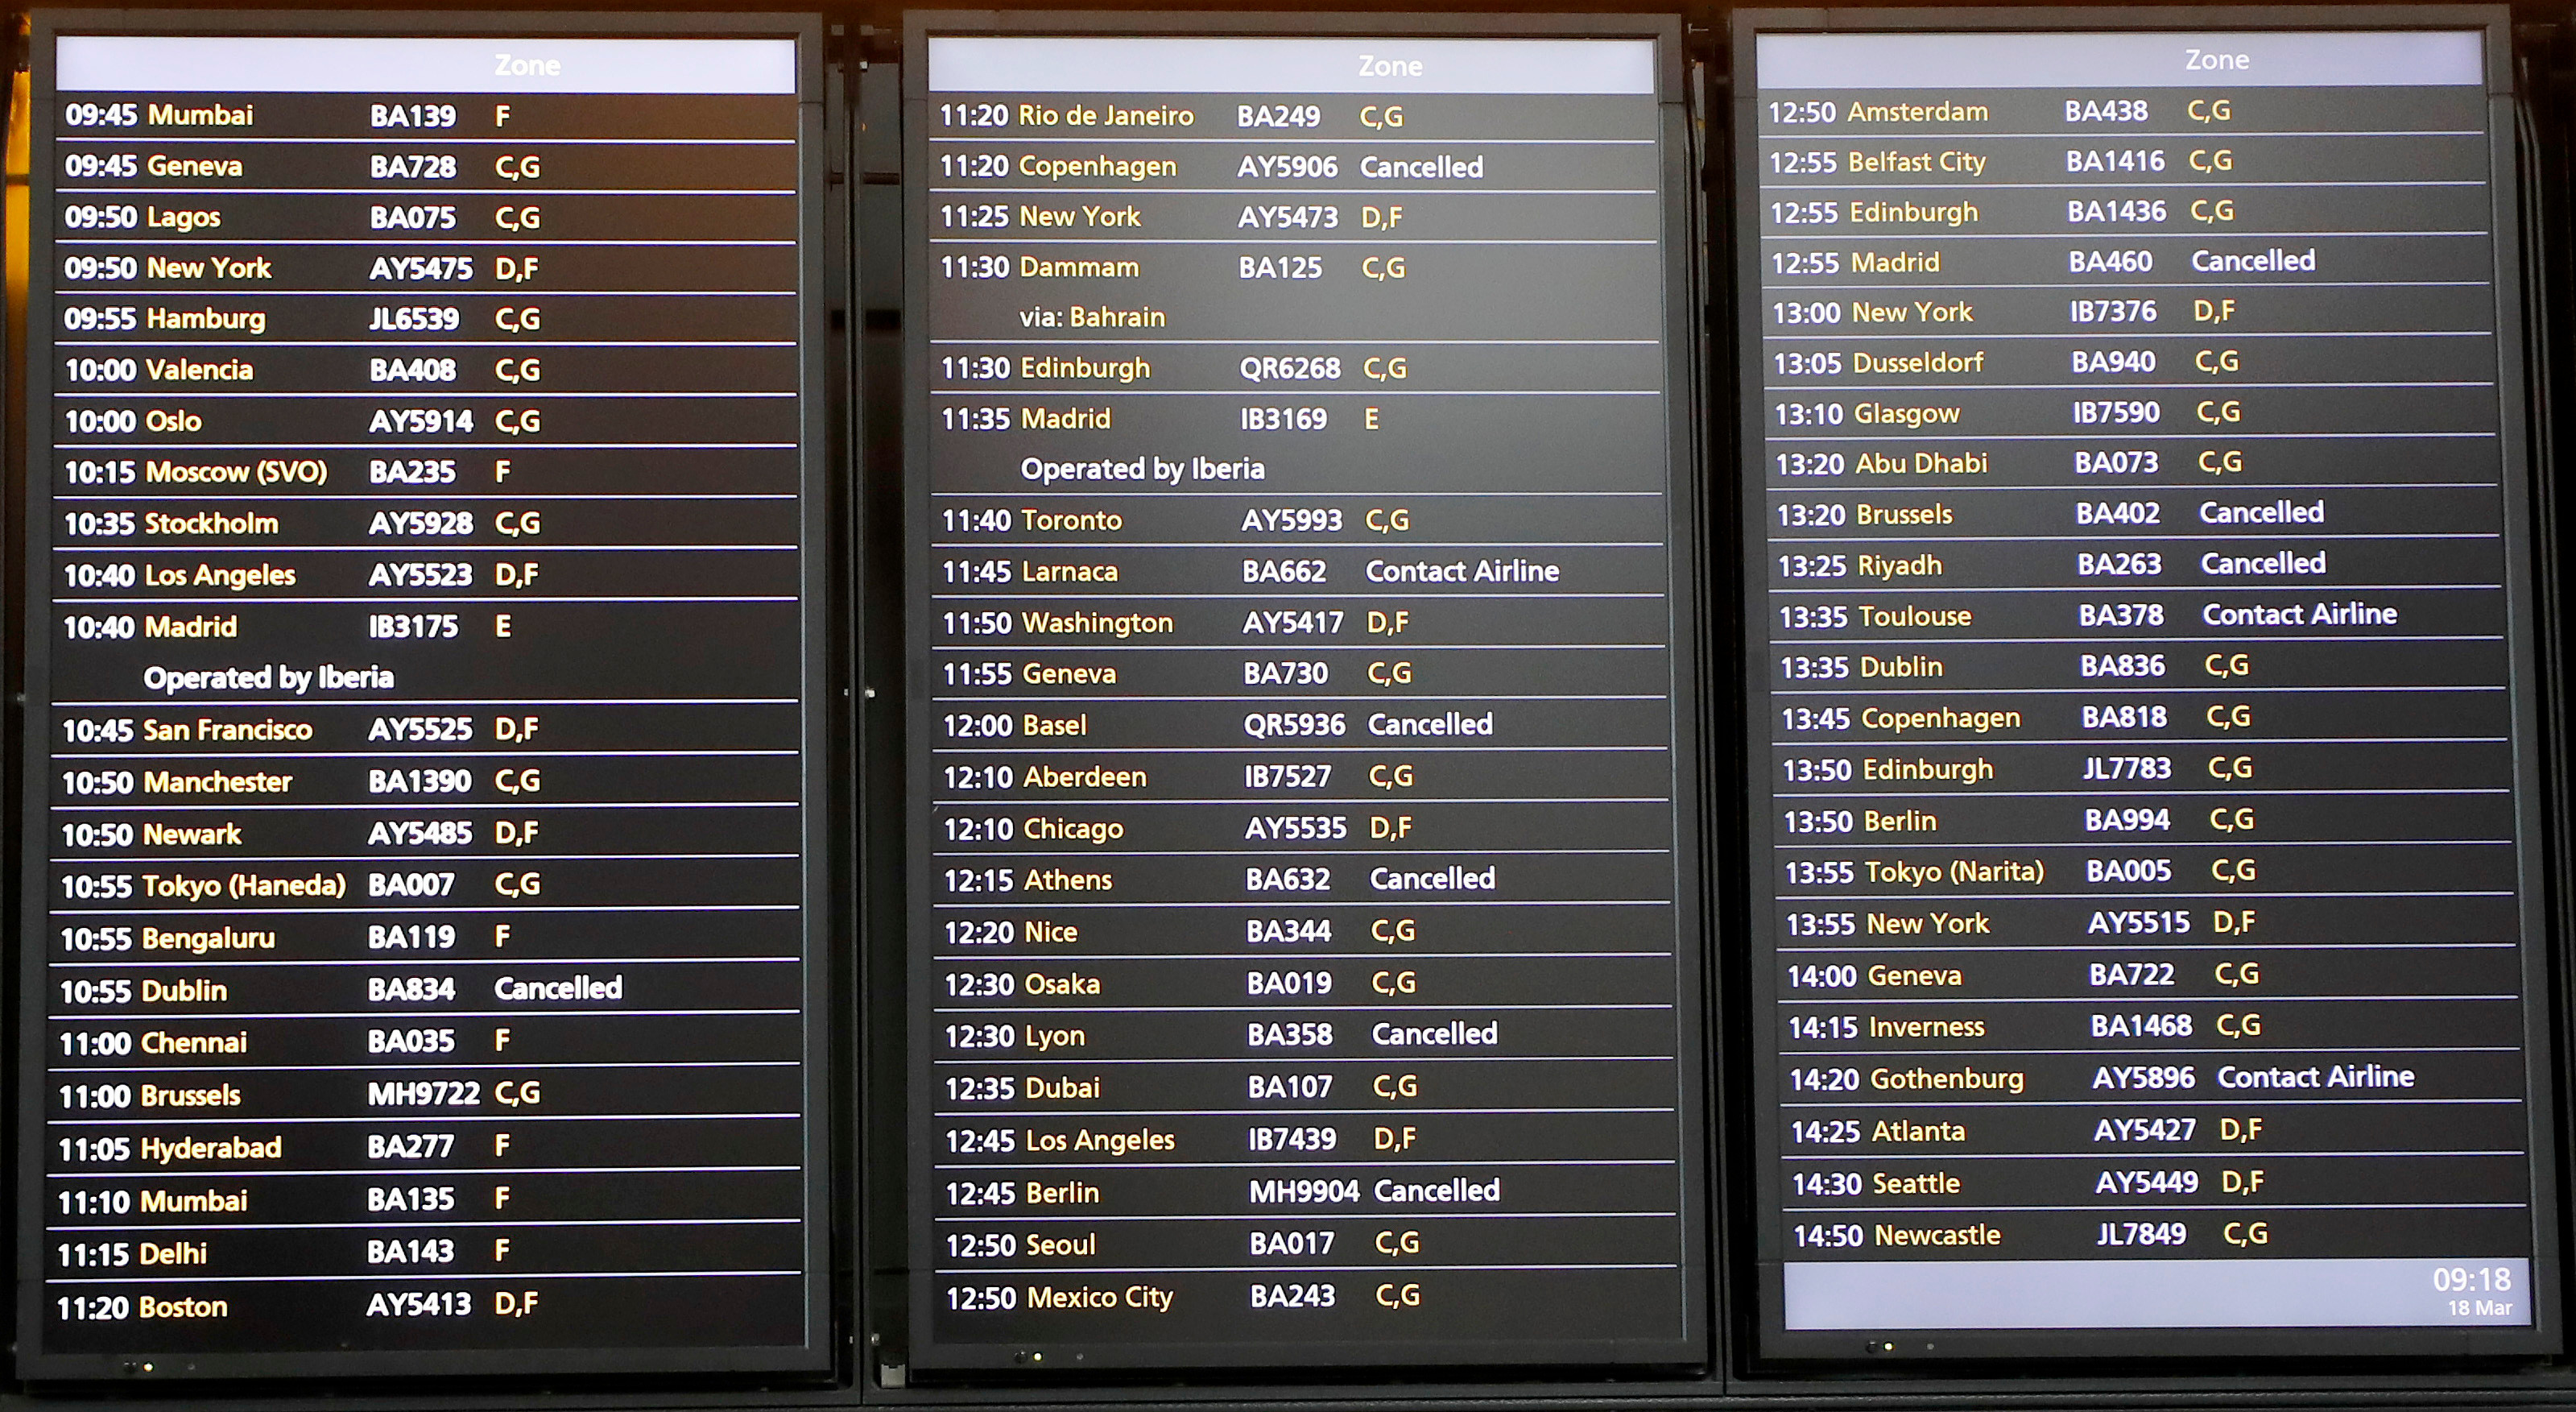 The flight schedule board shows a few cancelled flights at Heathrow Airport in London on Wednesday